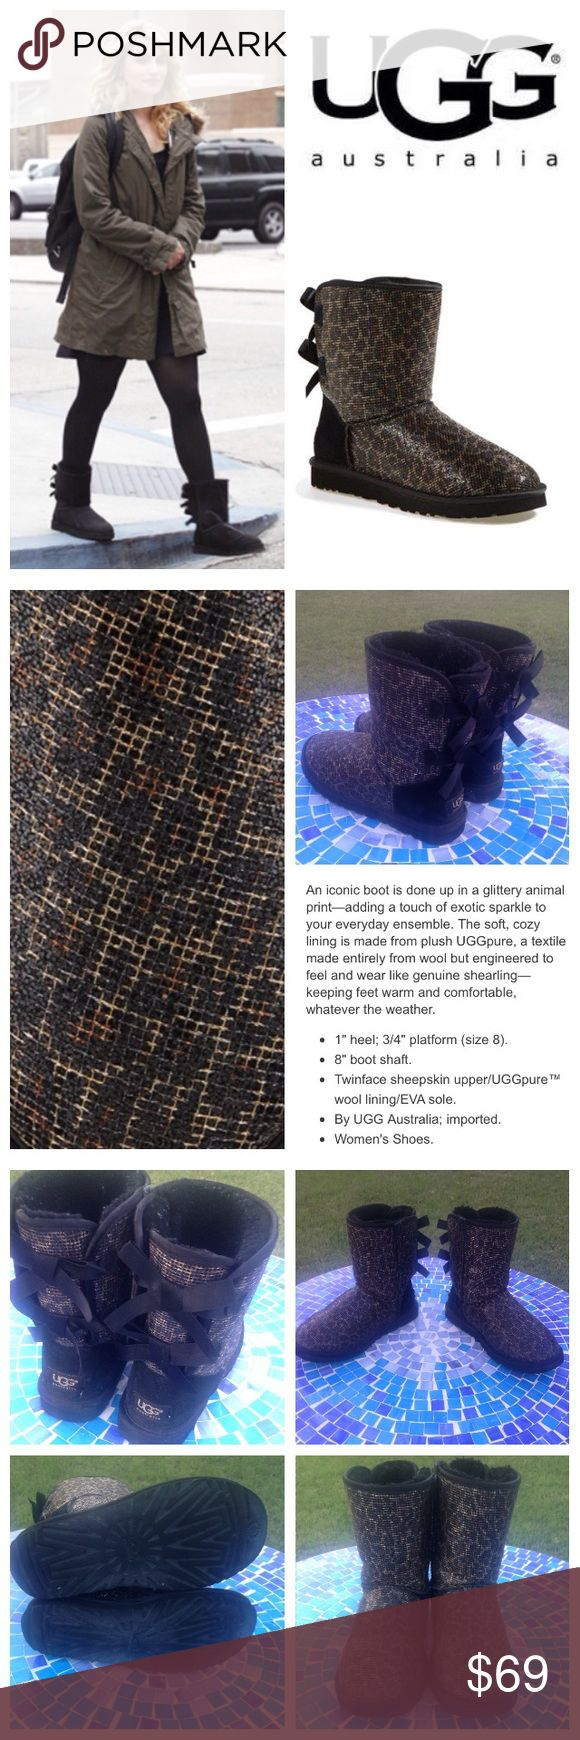 Authentic UGG Australia glitter leopard Bailey bow Super beautiful, ultra-versatile UGG Australia Glitter Leopard Bailey bow boots have been previously worn with lots of life left!  These adorable boots are available in a black/leopard combo for total versatility to pair with virtually everything & feature the softest inner lining that will have you wanting to wear them all the time!  Size is 6 which will accommodate a woman's 6-7.  Retail at $205!  No trades please.  Don't miss this deal…